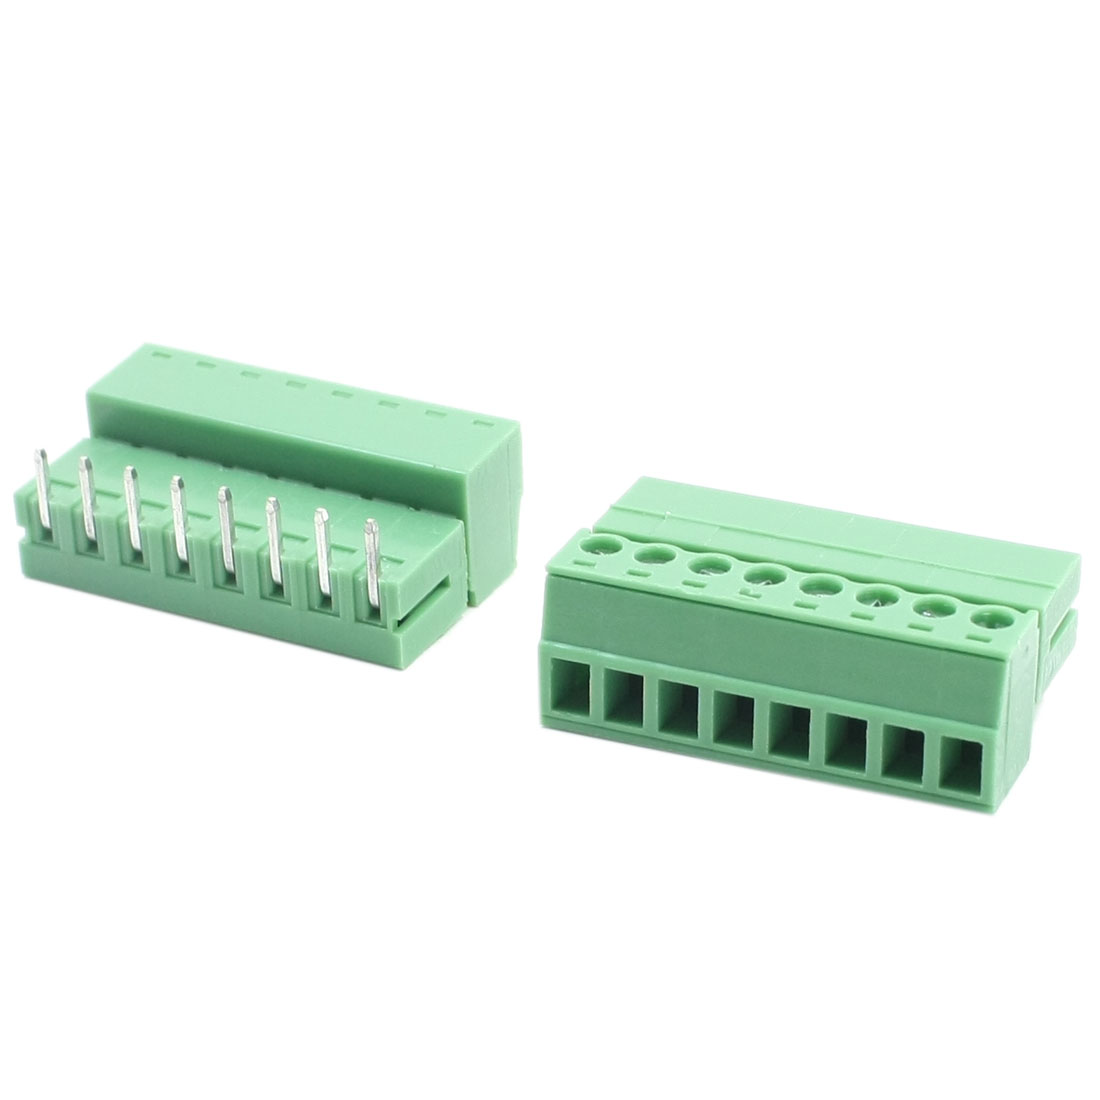 AC 300V 8A 3.81mm Pitch 8 Pins 22-16AWG Connect Pluggable Type Through Hole Mounting PCB Terminal Block Connnector 2Pcs